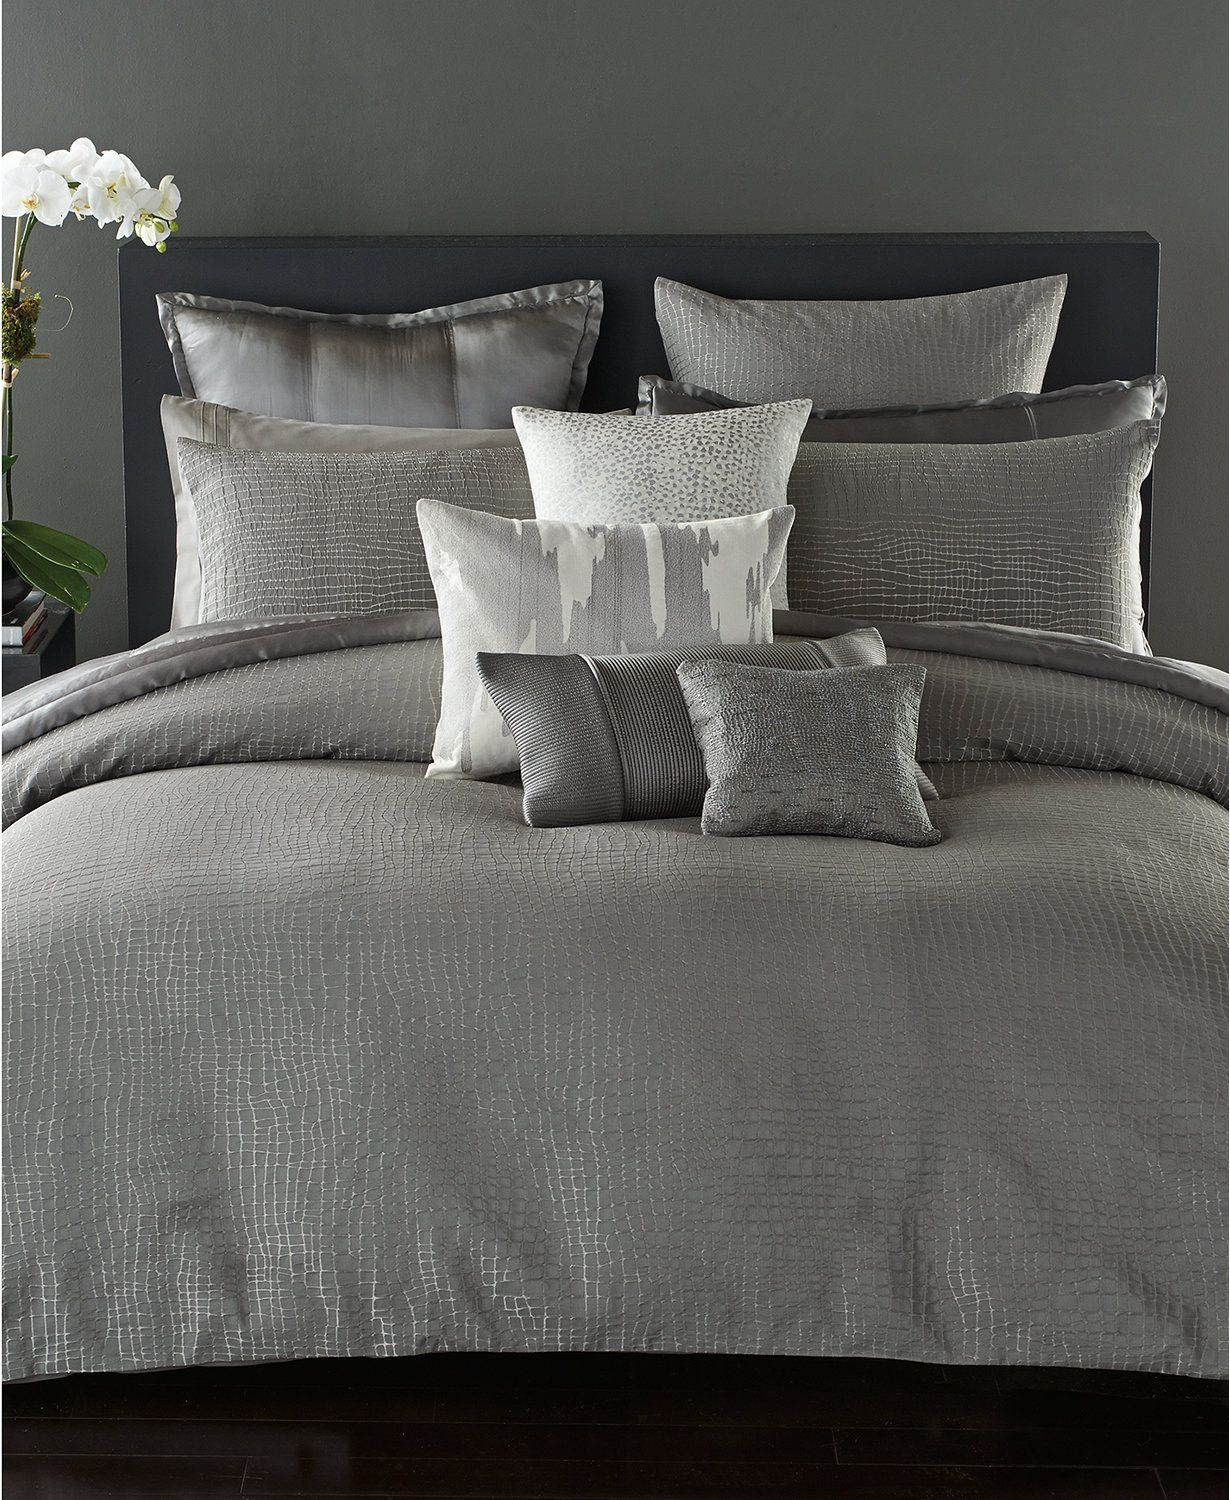 Closeout Surface Bedding Collection Luxury Bedding Bedding Collections Bedding Sets